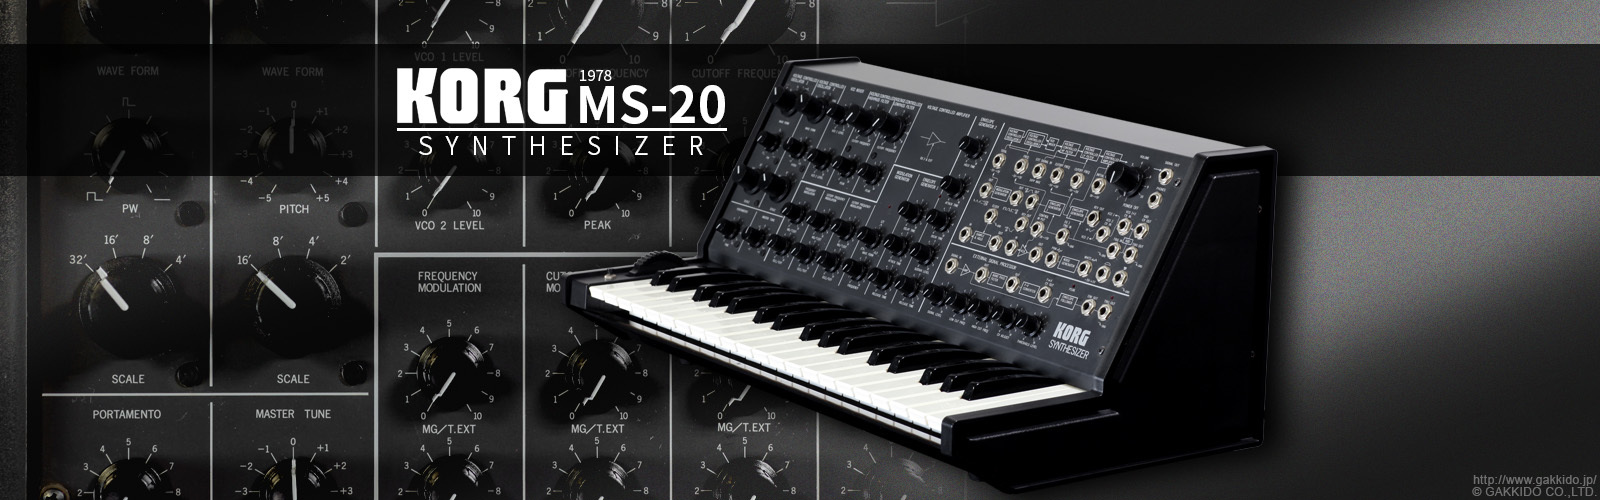 KORG MS-20 SYNTHESIZER アナログシンセサイザー [中古品]